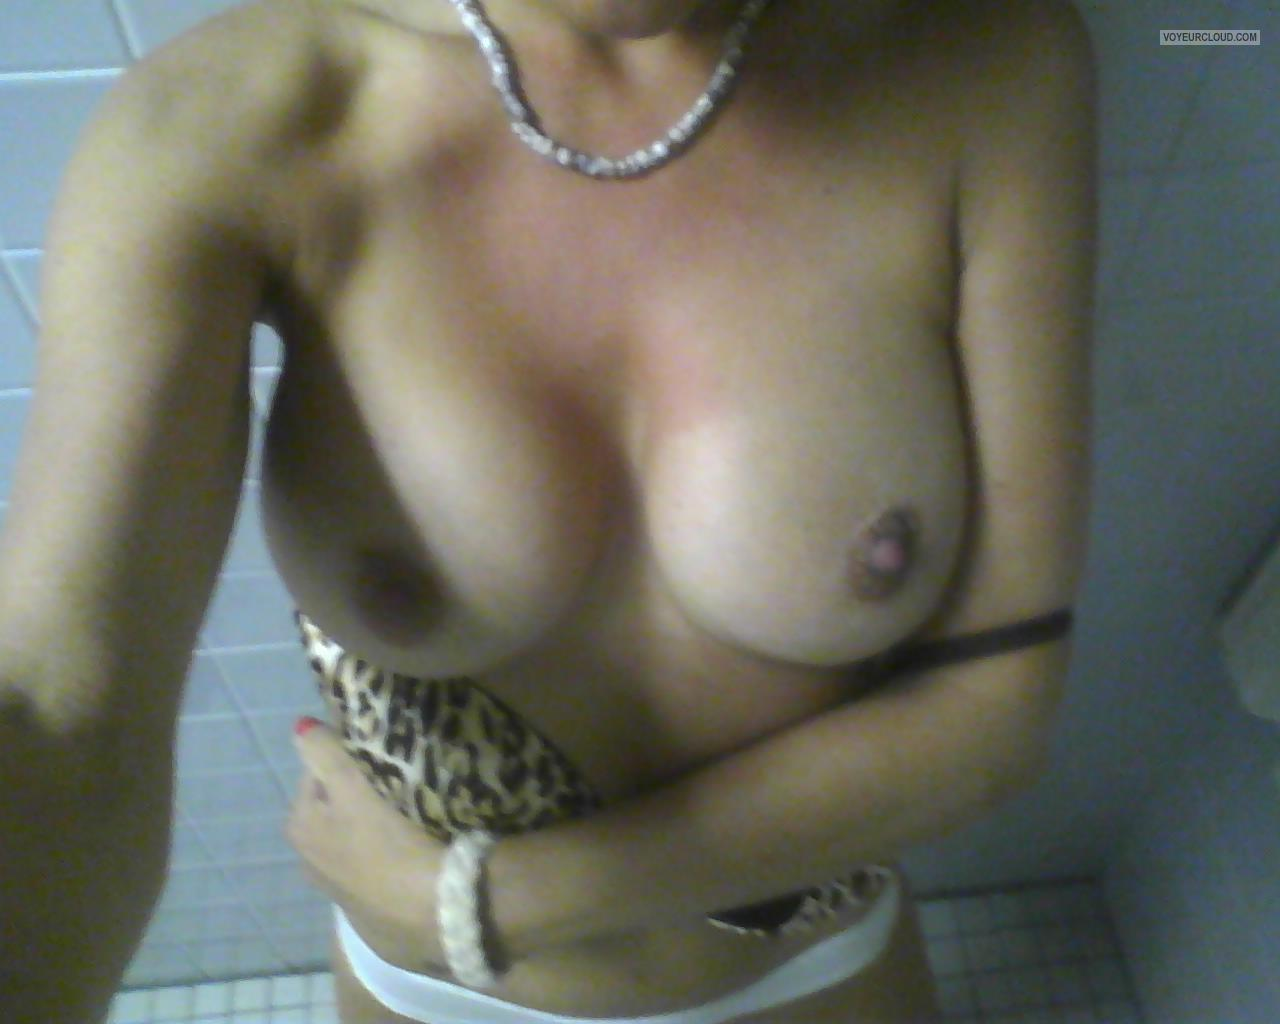 Tit Flash: My Big Tits (Selfie) - Calicali from United States